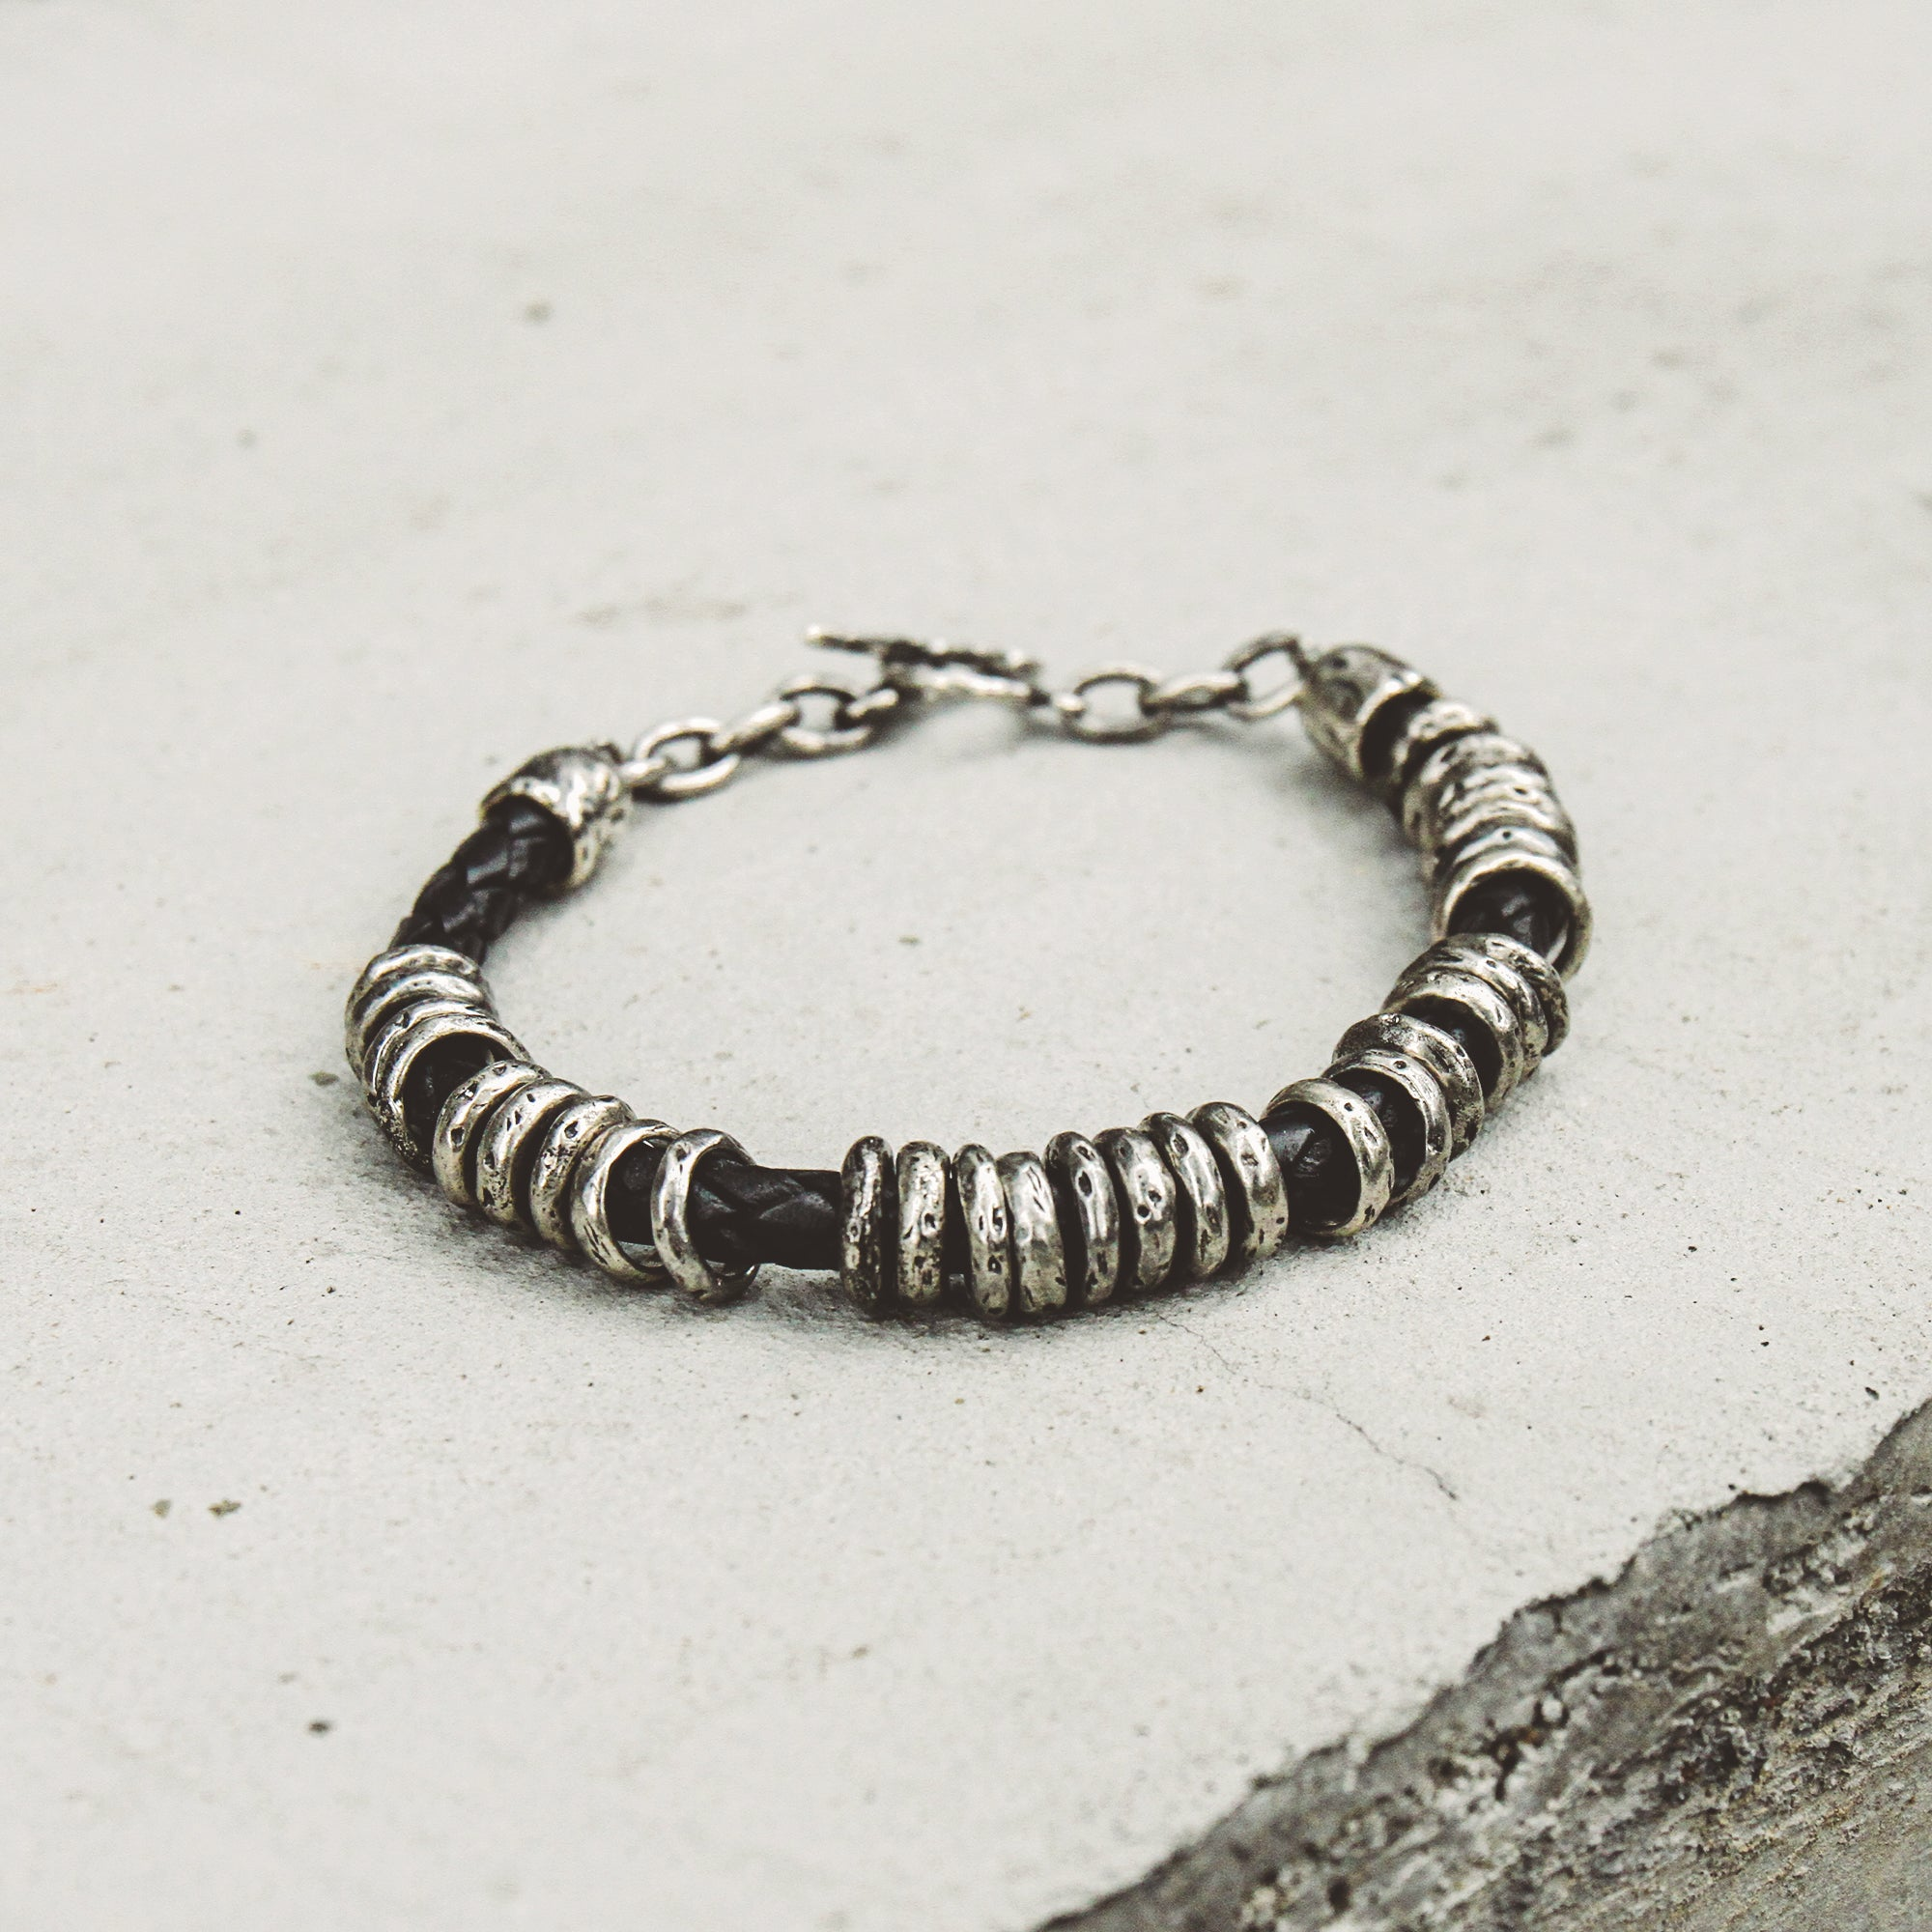 GRAVITY | Braided Leather Bracelet with Silver Rings